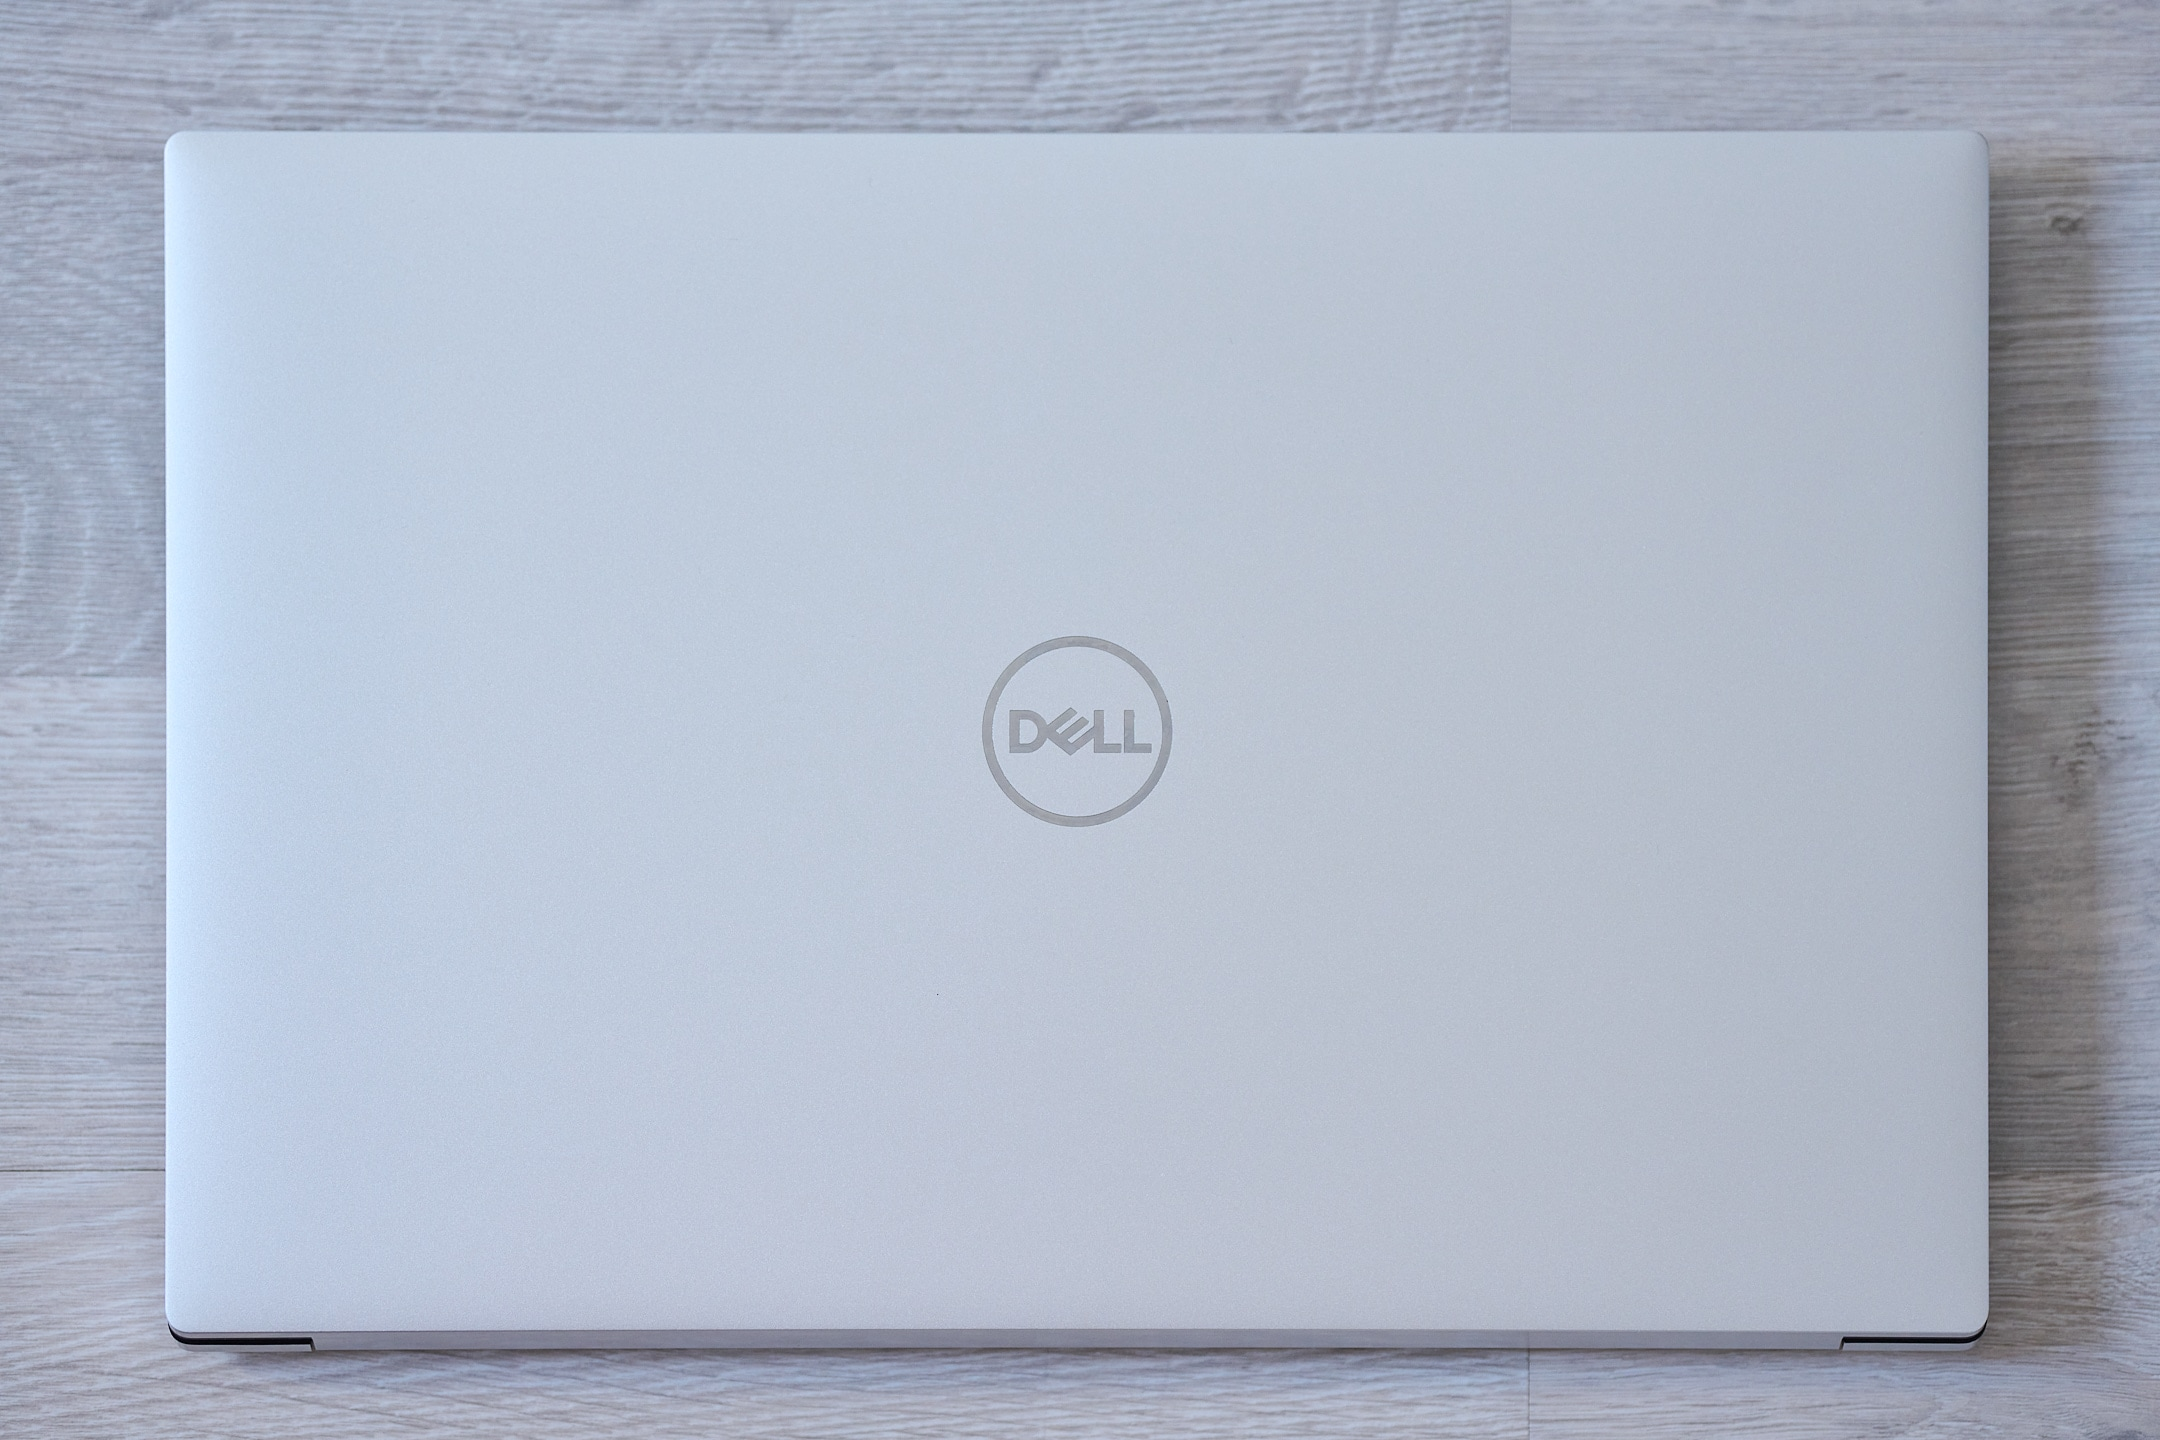 Test Dell XPS 15 9500